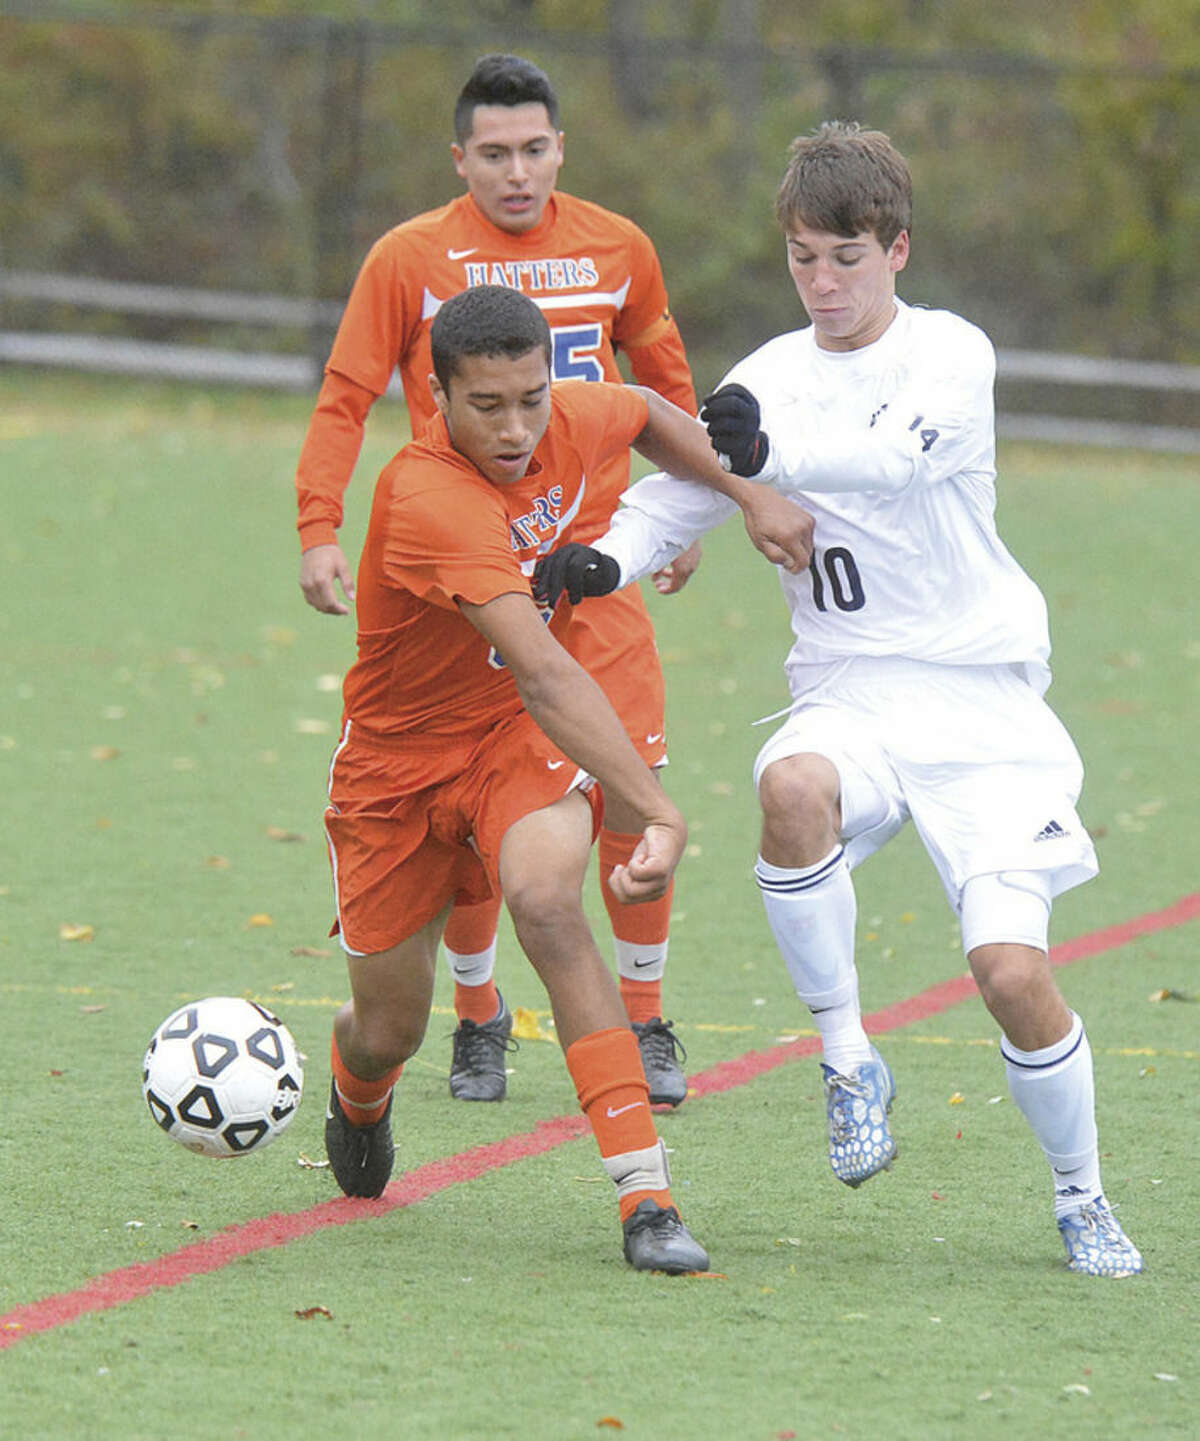 Hour Photo/Alex von Kleydorff Wilton's Jack Brandt, right, tries to take the ball from a Danbury player during Wednesday's game at Fujitani Field in Wilton.